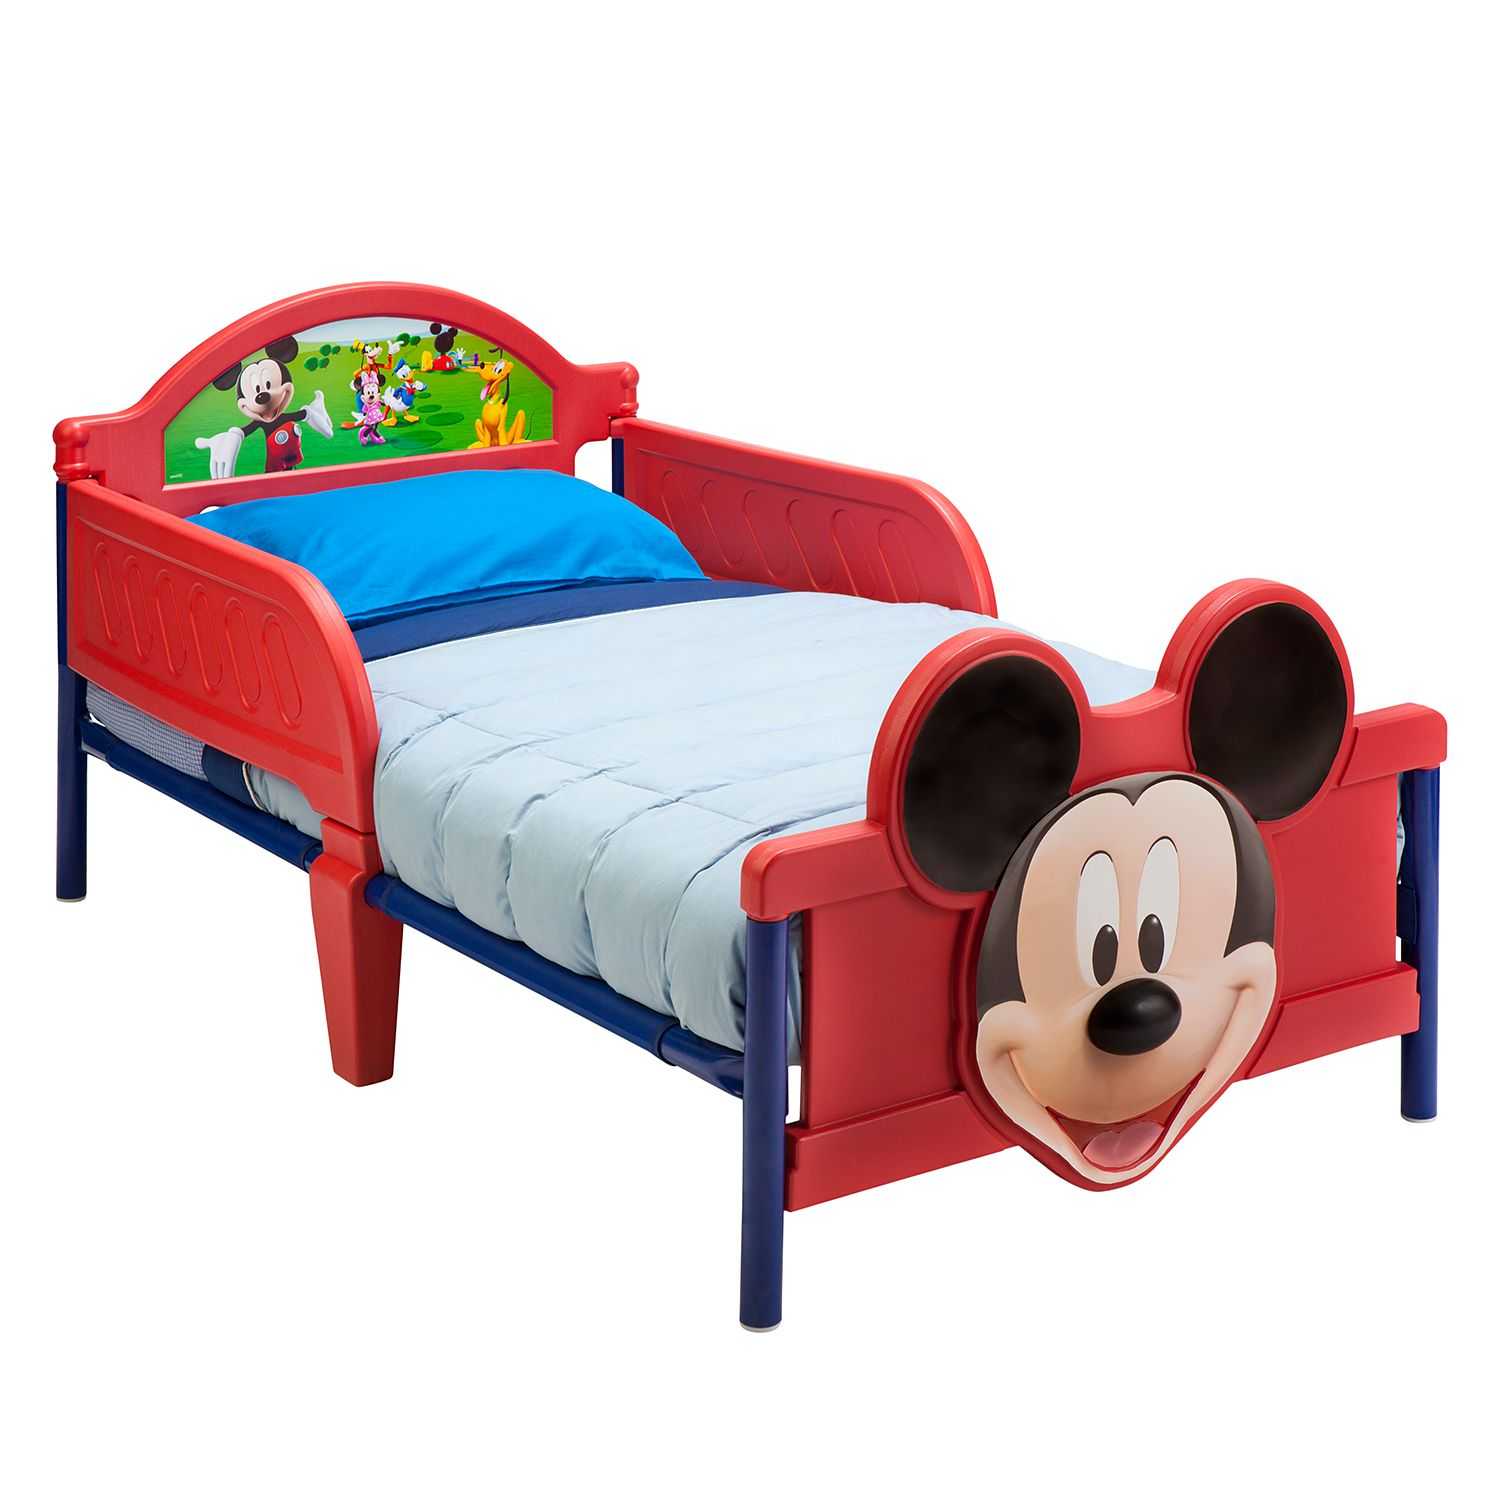 Lit junior Mickey Mouse - 70 x 140 cm, Delta Children